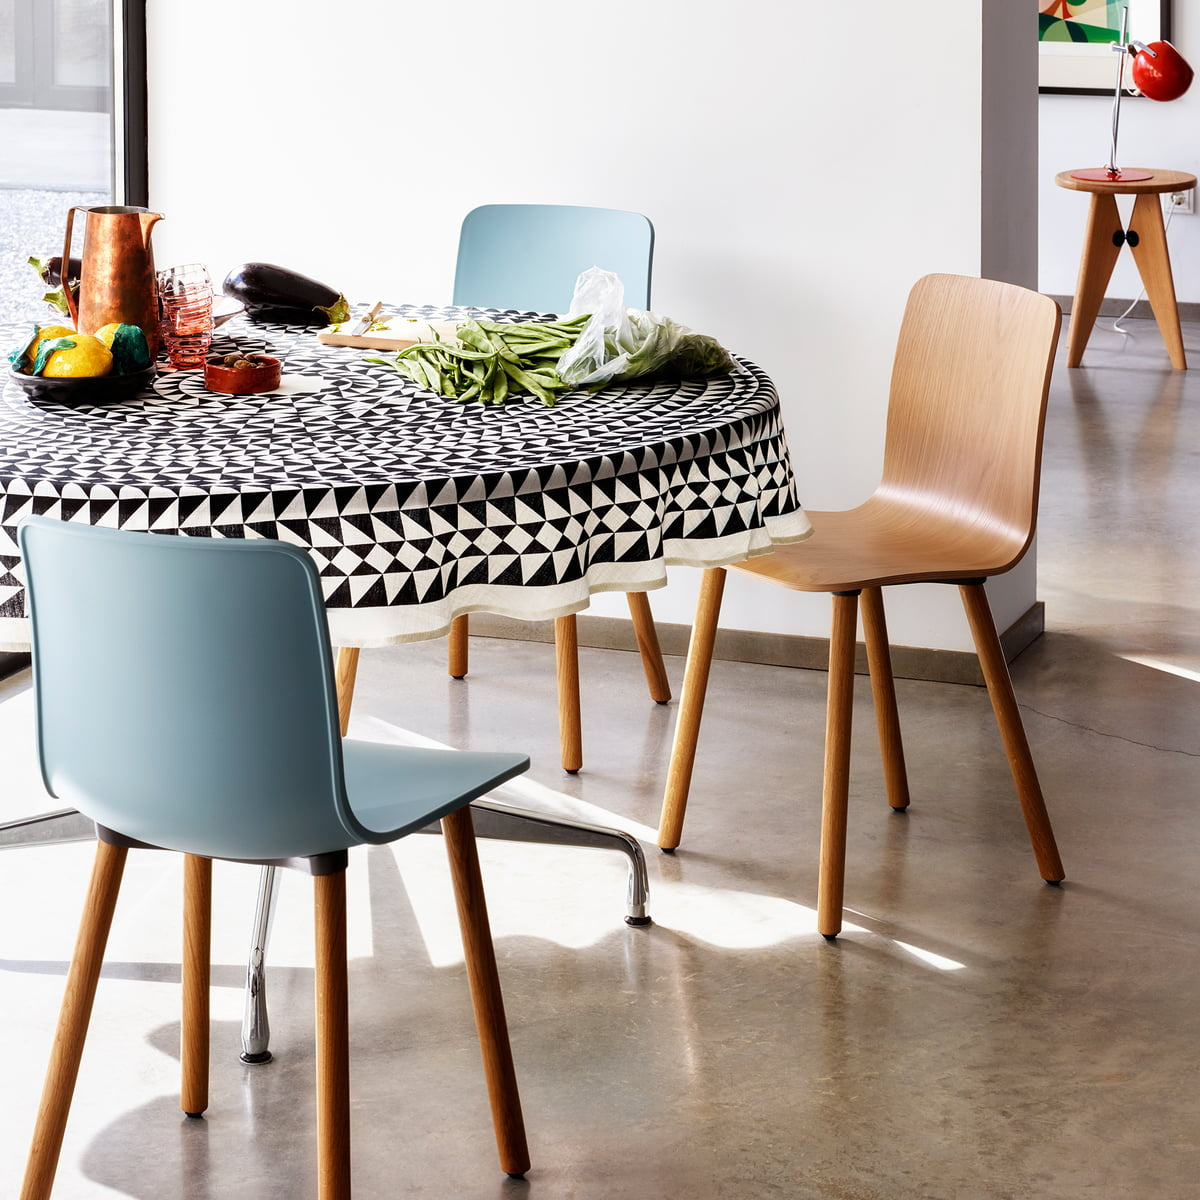 Hal Wood Chair And Linen Table Cloth Geometric By Vitra